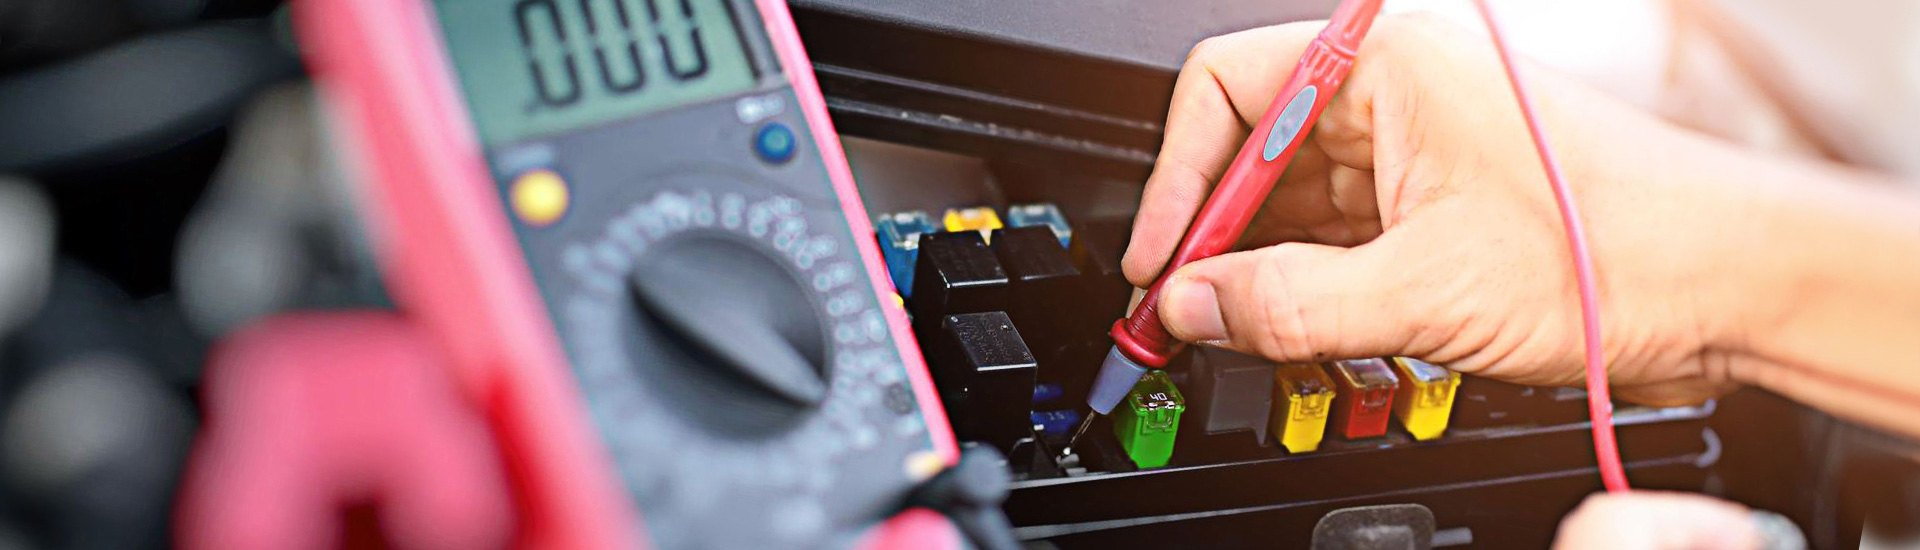 Diagnostic & Testing Tools | Scanners, Multimeters, Testers